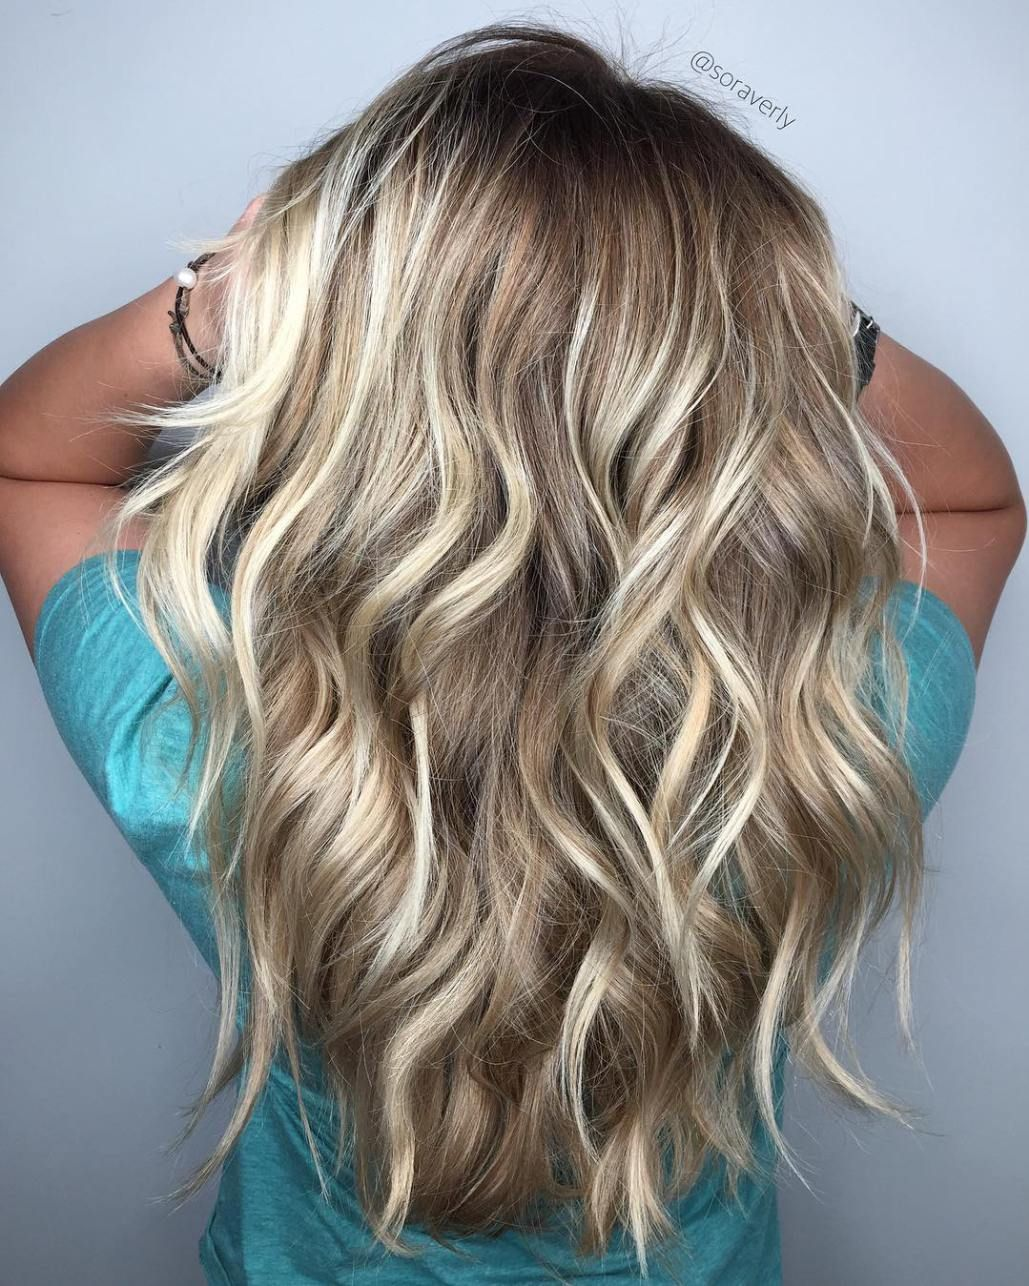 Balayage Hairstyle Magnificent 90 Balayage Hair Color Ideas With Blonde Brown And Caramel